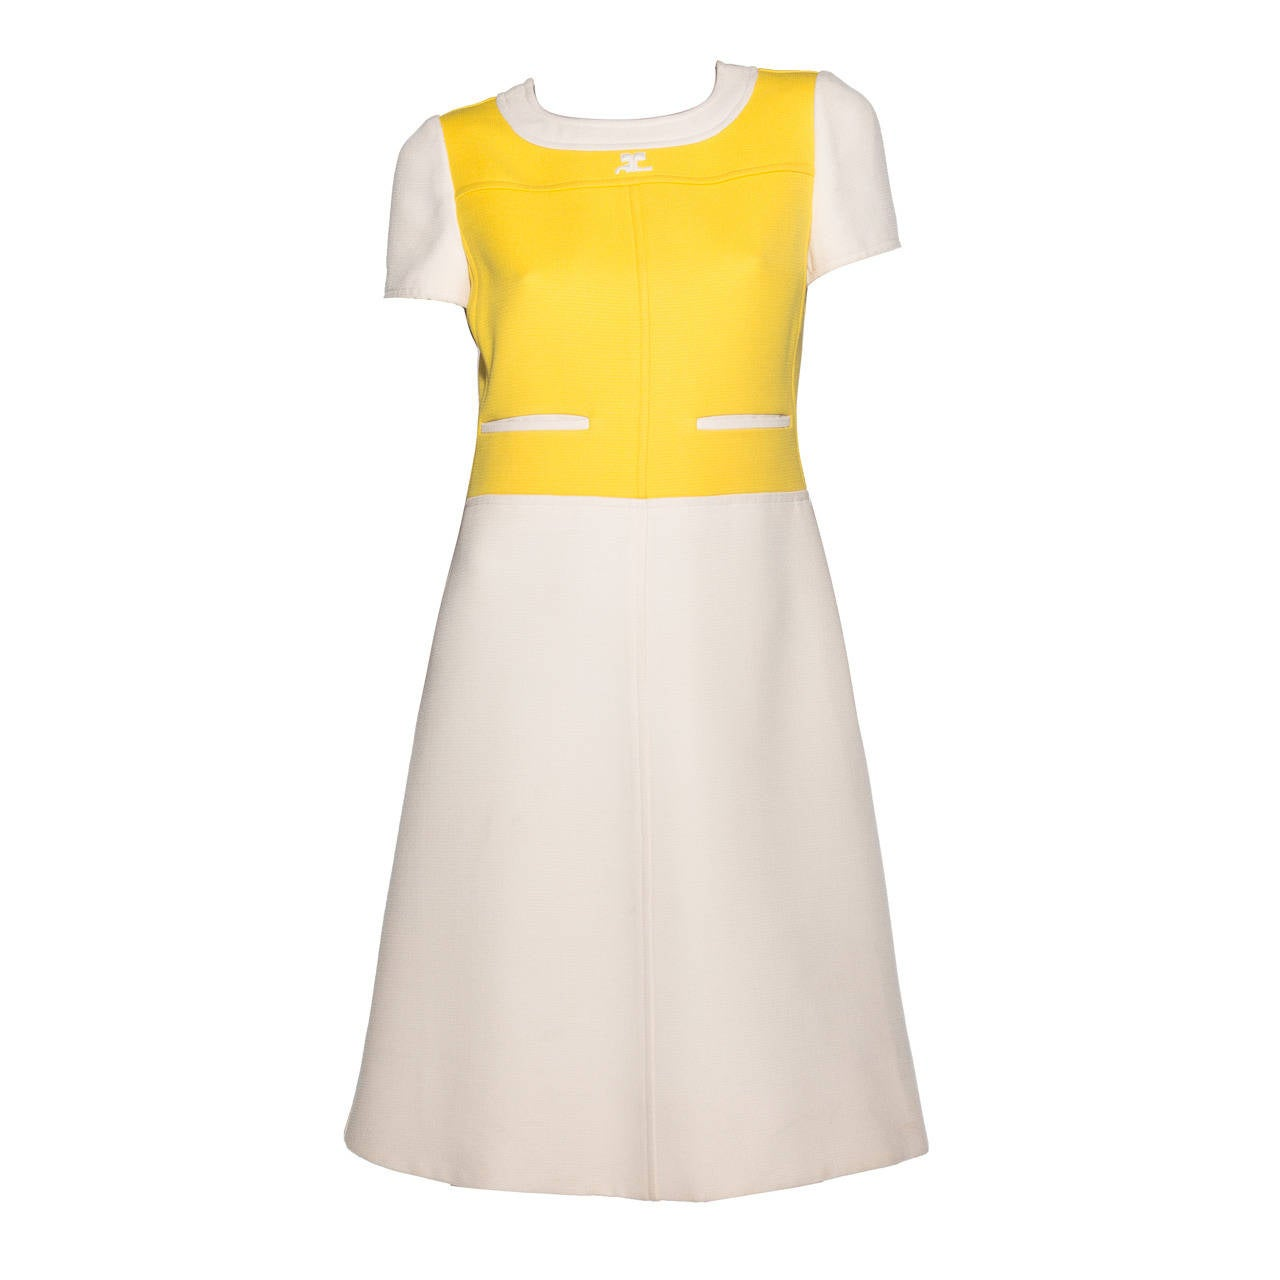 Andre Courreges  A-Line Dress With Cap Sleeves, Circa 1960's 1